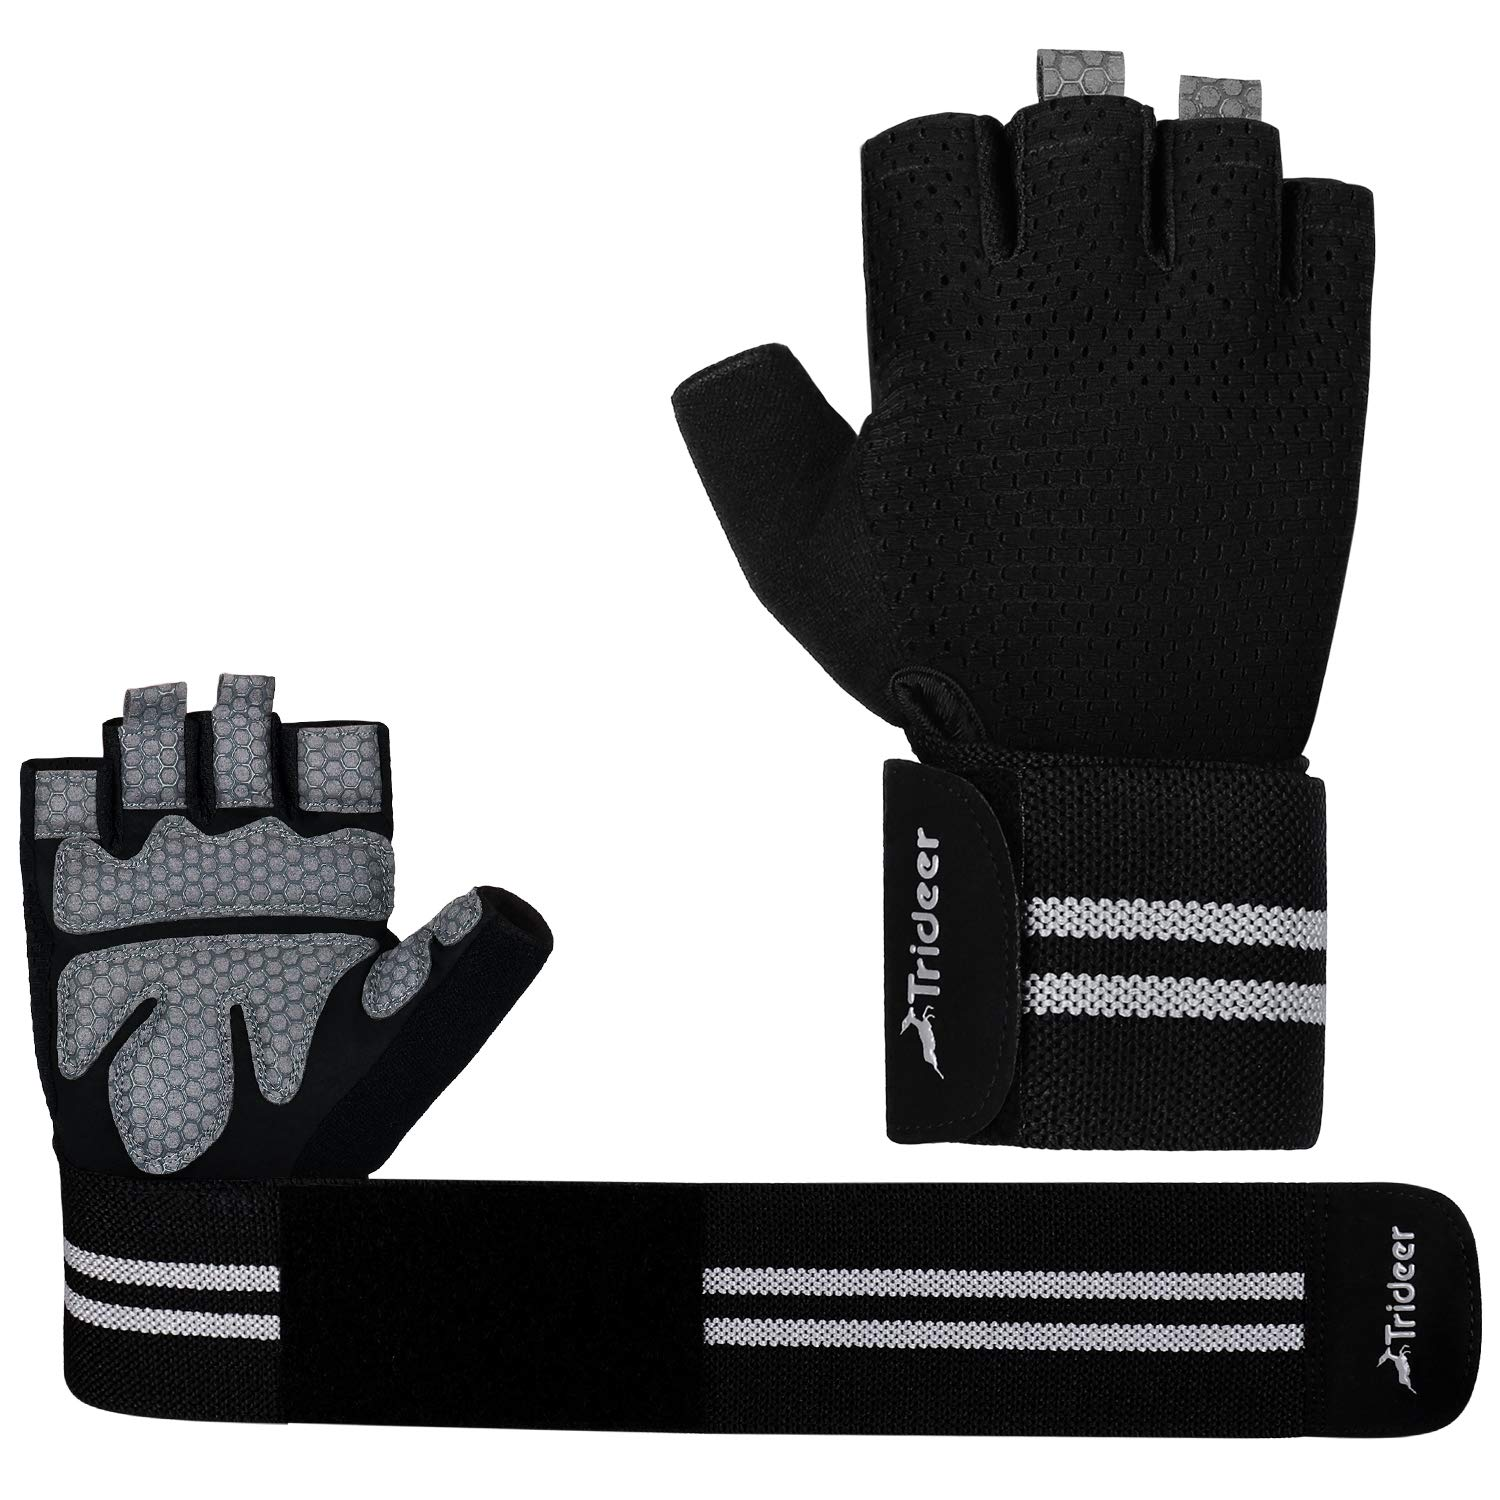 Trideer Padded Crossfit Gloves